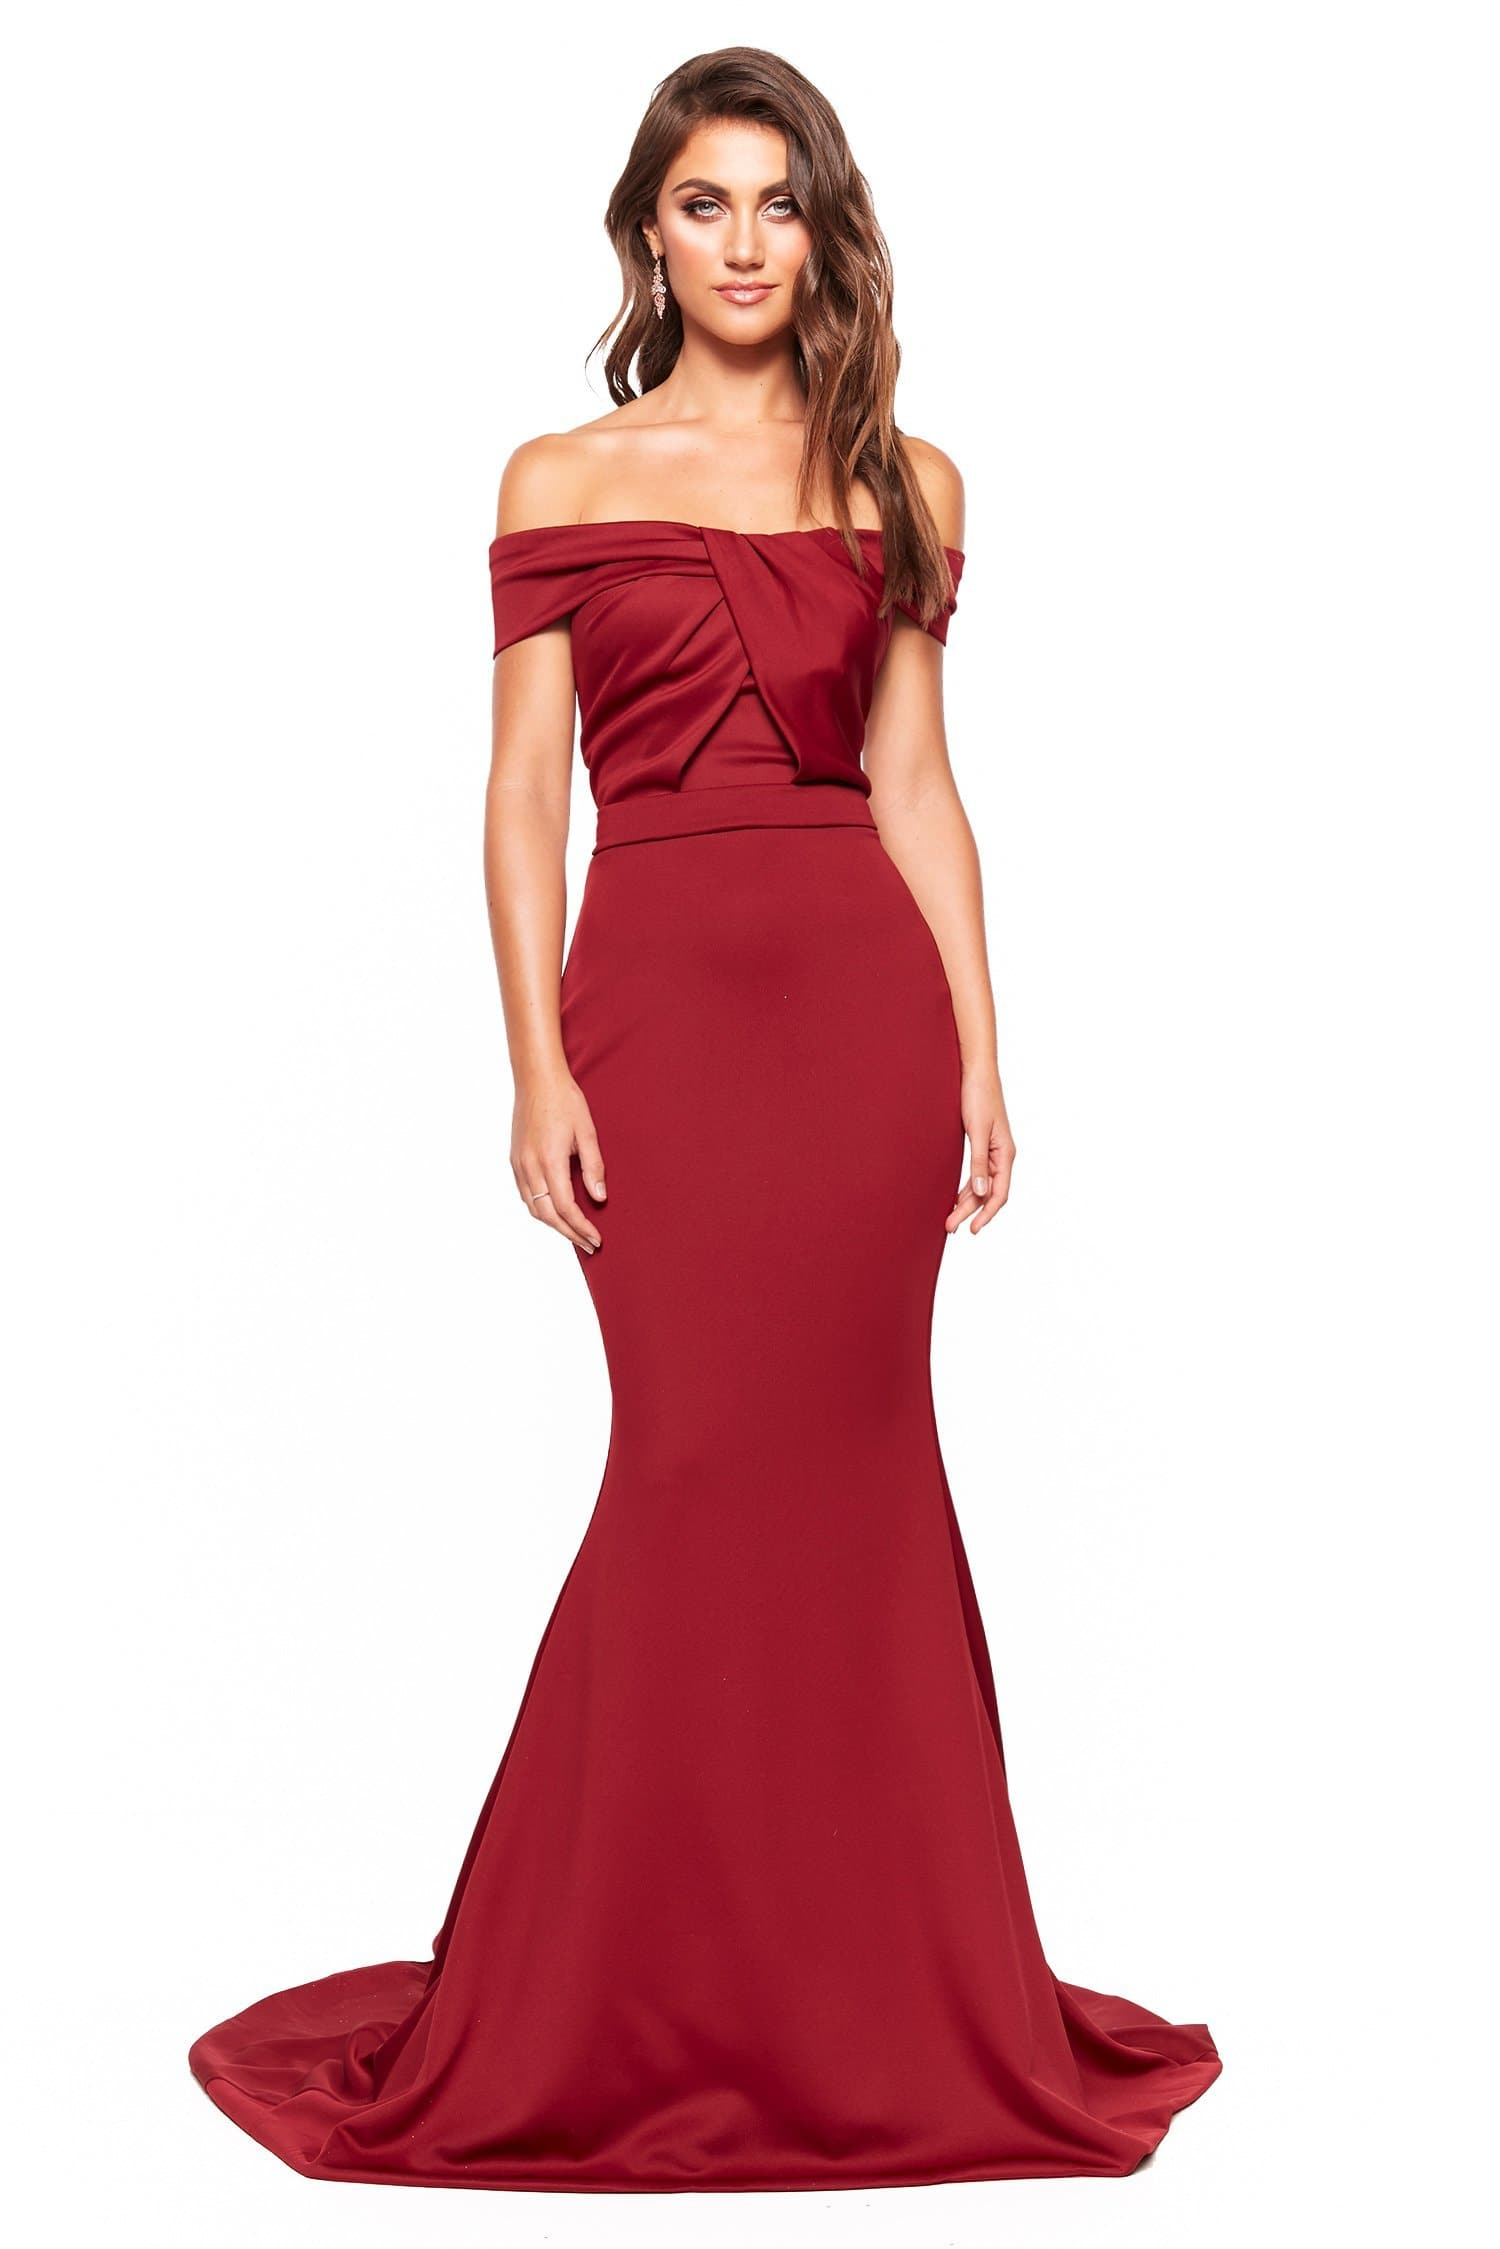 A&N Luxe Myra - Burgundy Off Shoulder Gown with Mermaid Silhouette